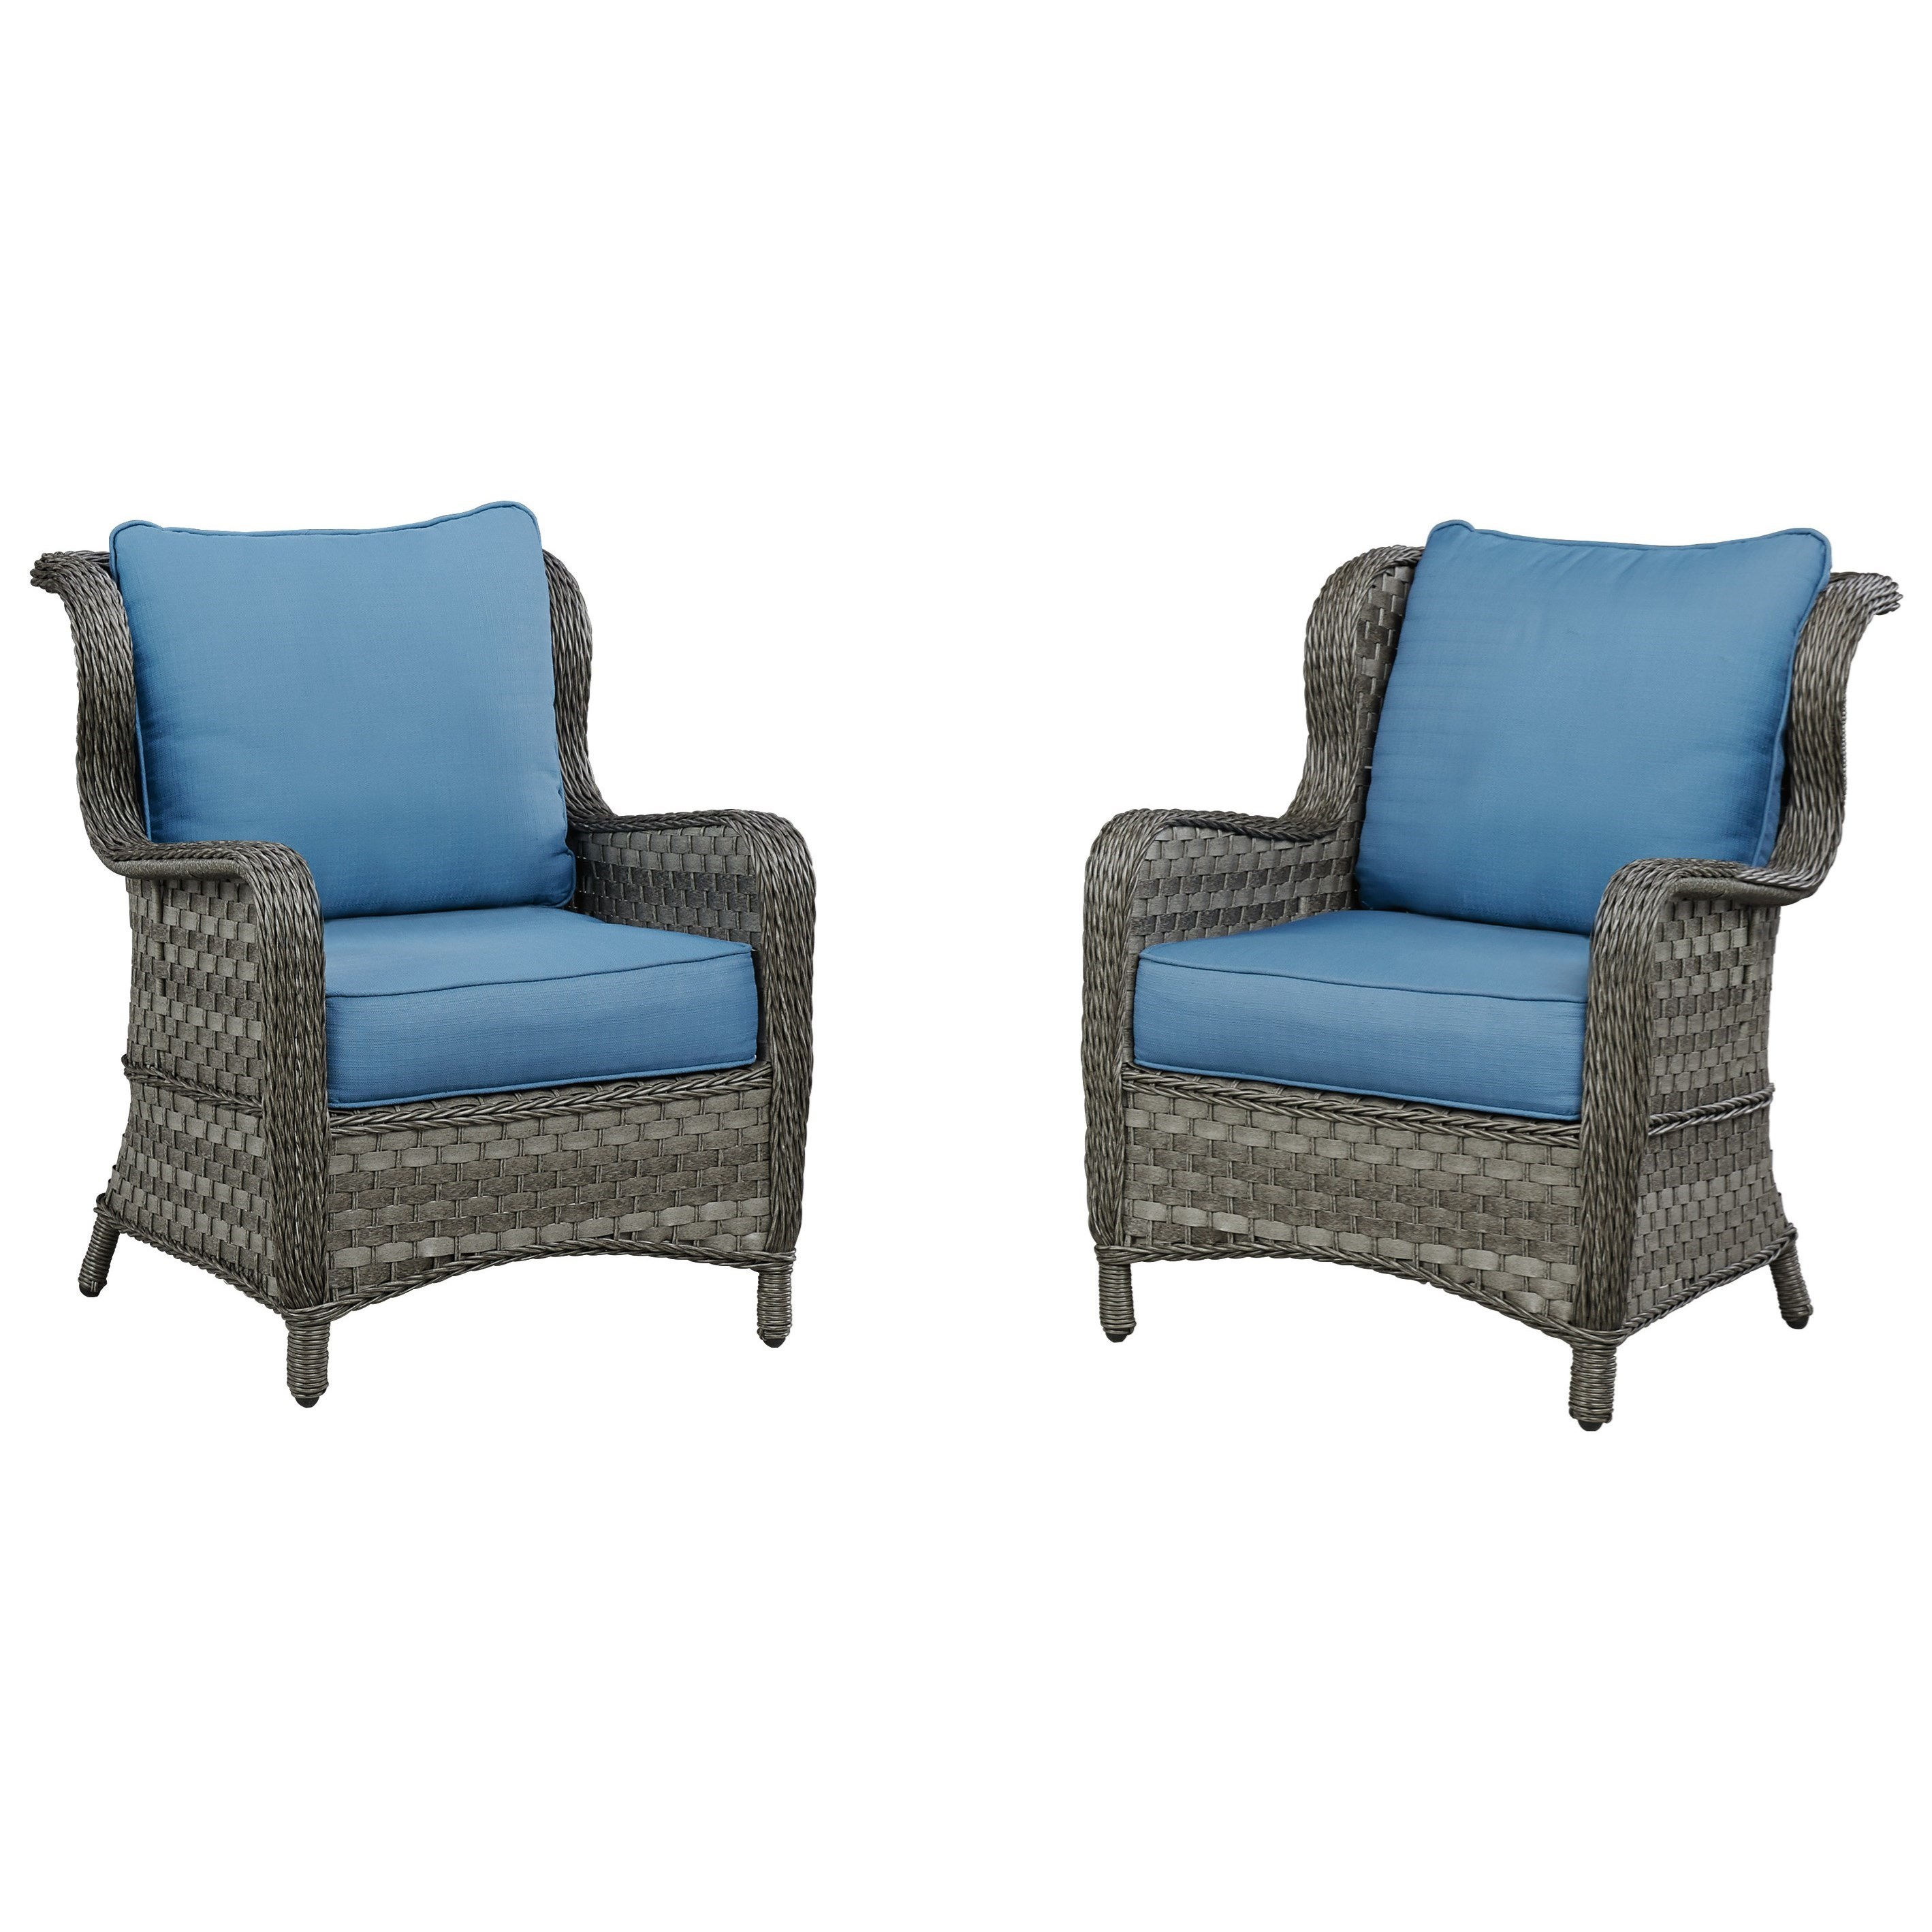 Signature Design By Ashley Abbots CourtSet Of 2 Outdoor Lounge Chairs W/  Cushion ...